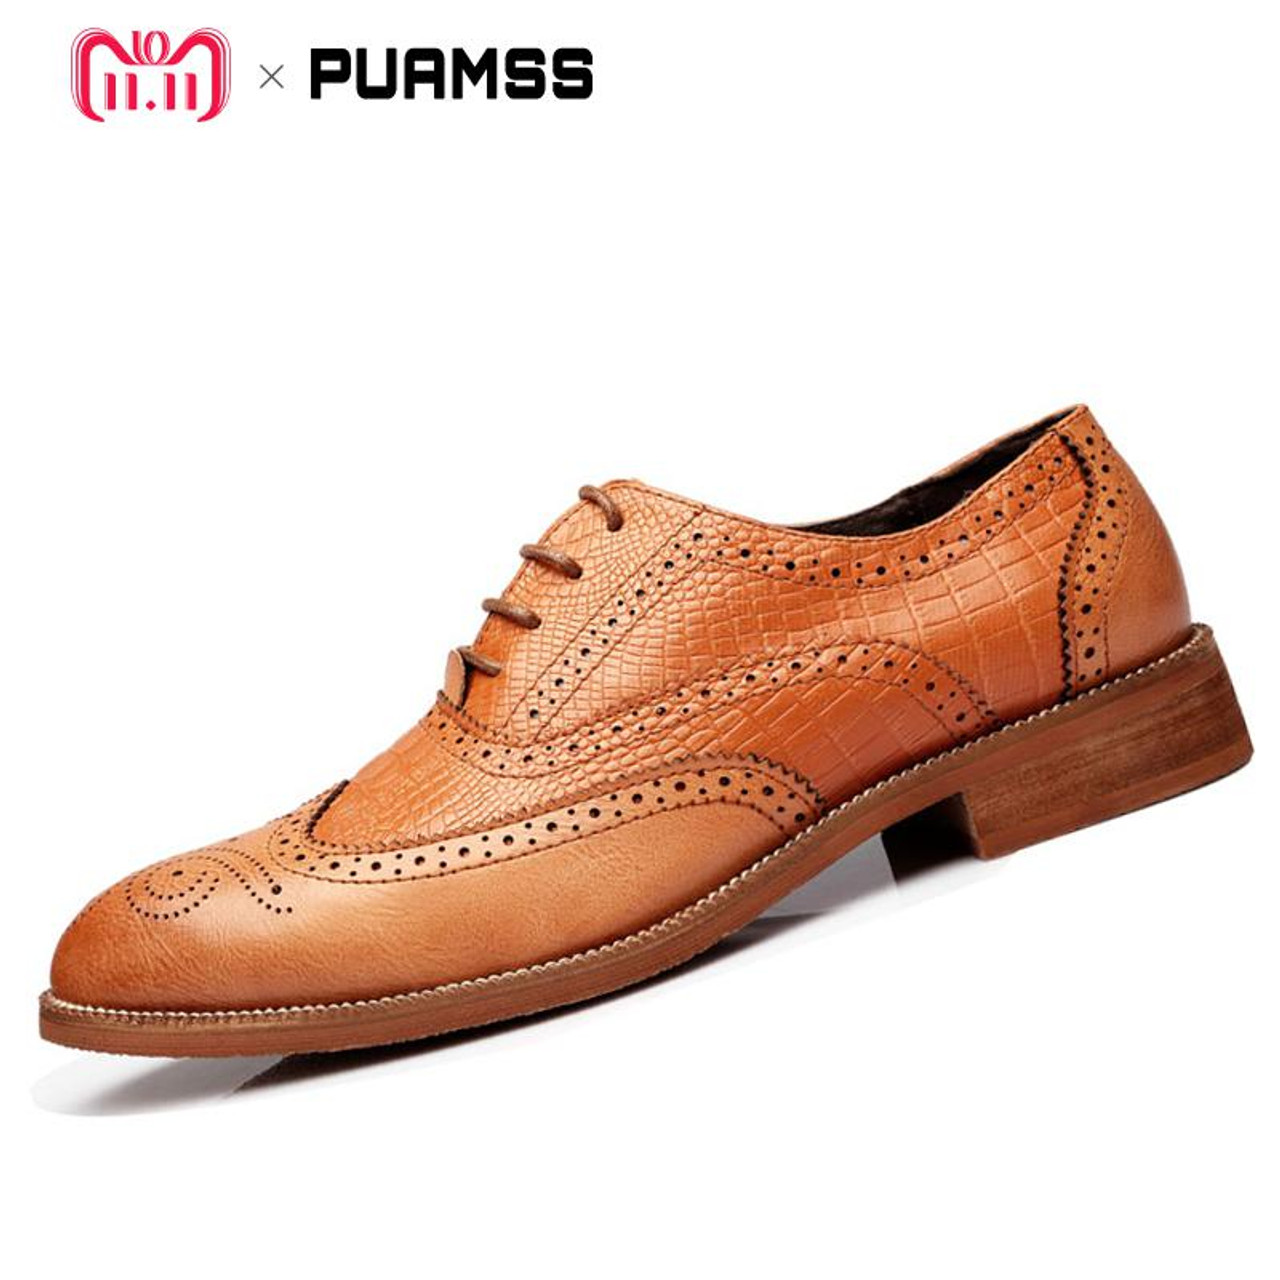 2017 HOT Mens Britain Loafers Oxfords Dress Formal Lace Up Casual Leather Shoes